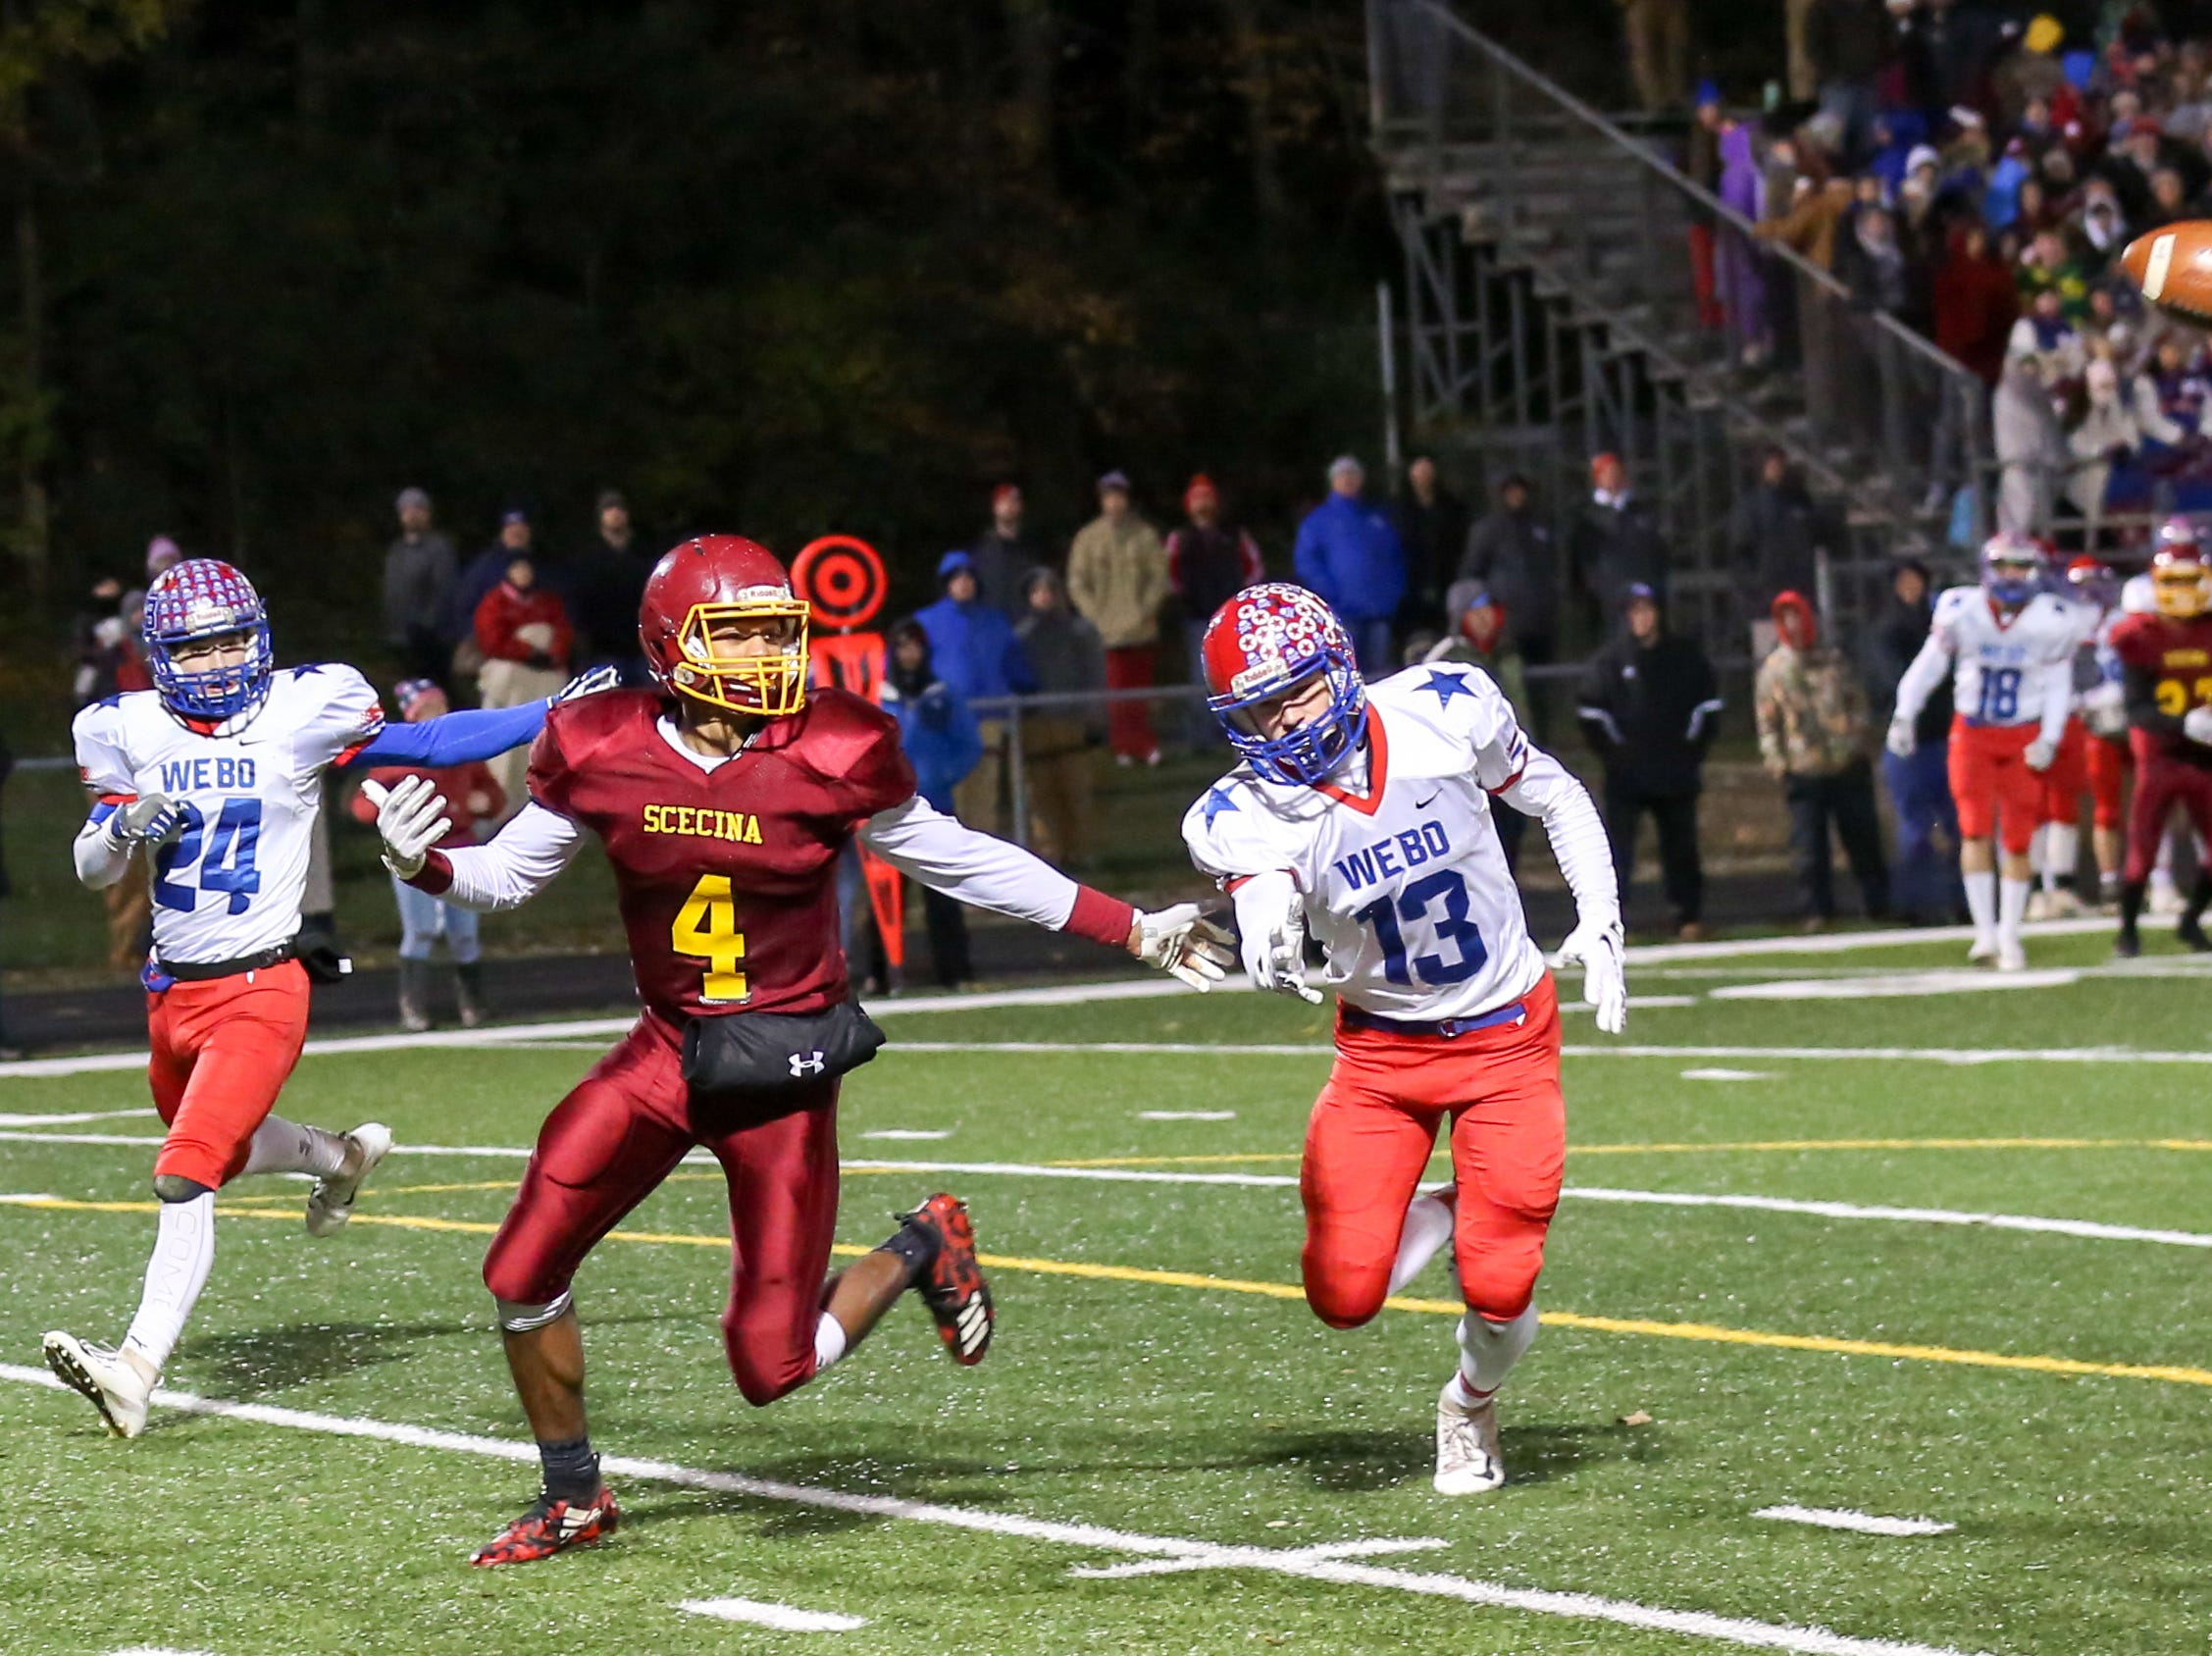 Scecina's David Baker (4) cannot reach the ball on this pass attempt during the first half of Indianapolis Scecina vs Western Boone High School varsity football in the Class 2A Regional Championship held at Roncalli High School, Friday, November 9, 2018.